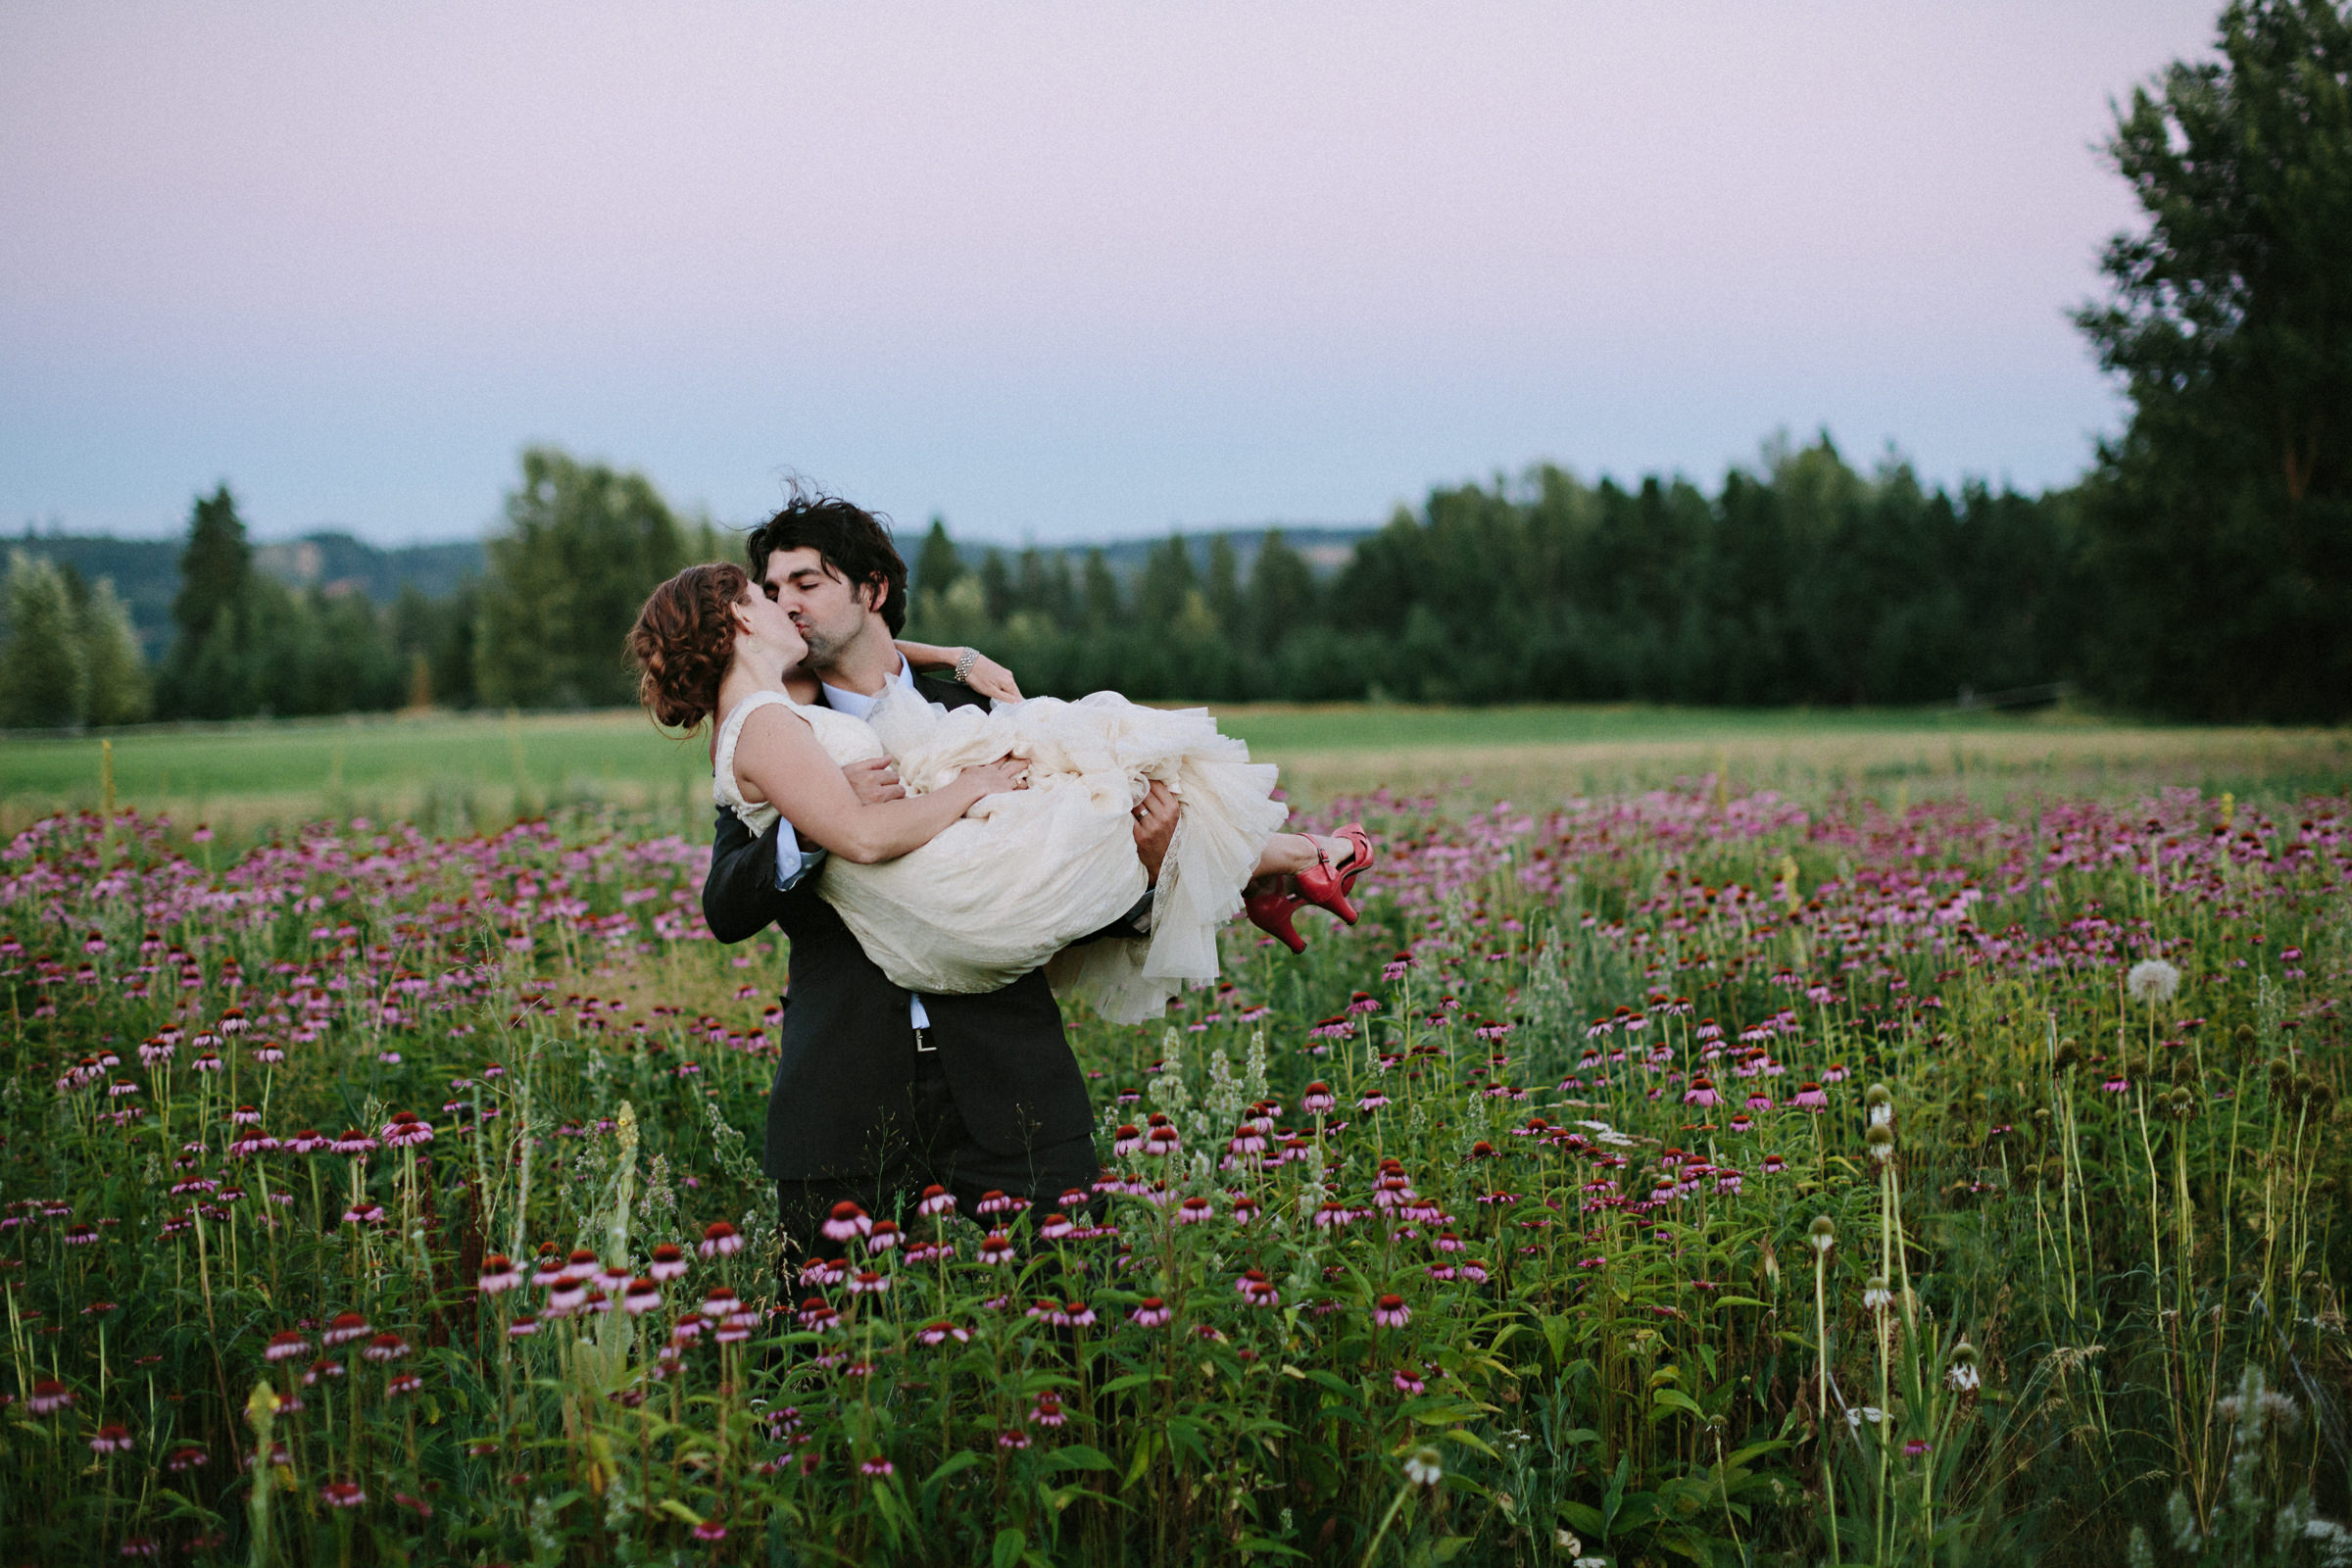 Groom carrying bride in field of flowers - photo by Jonas Seaman Photography